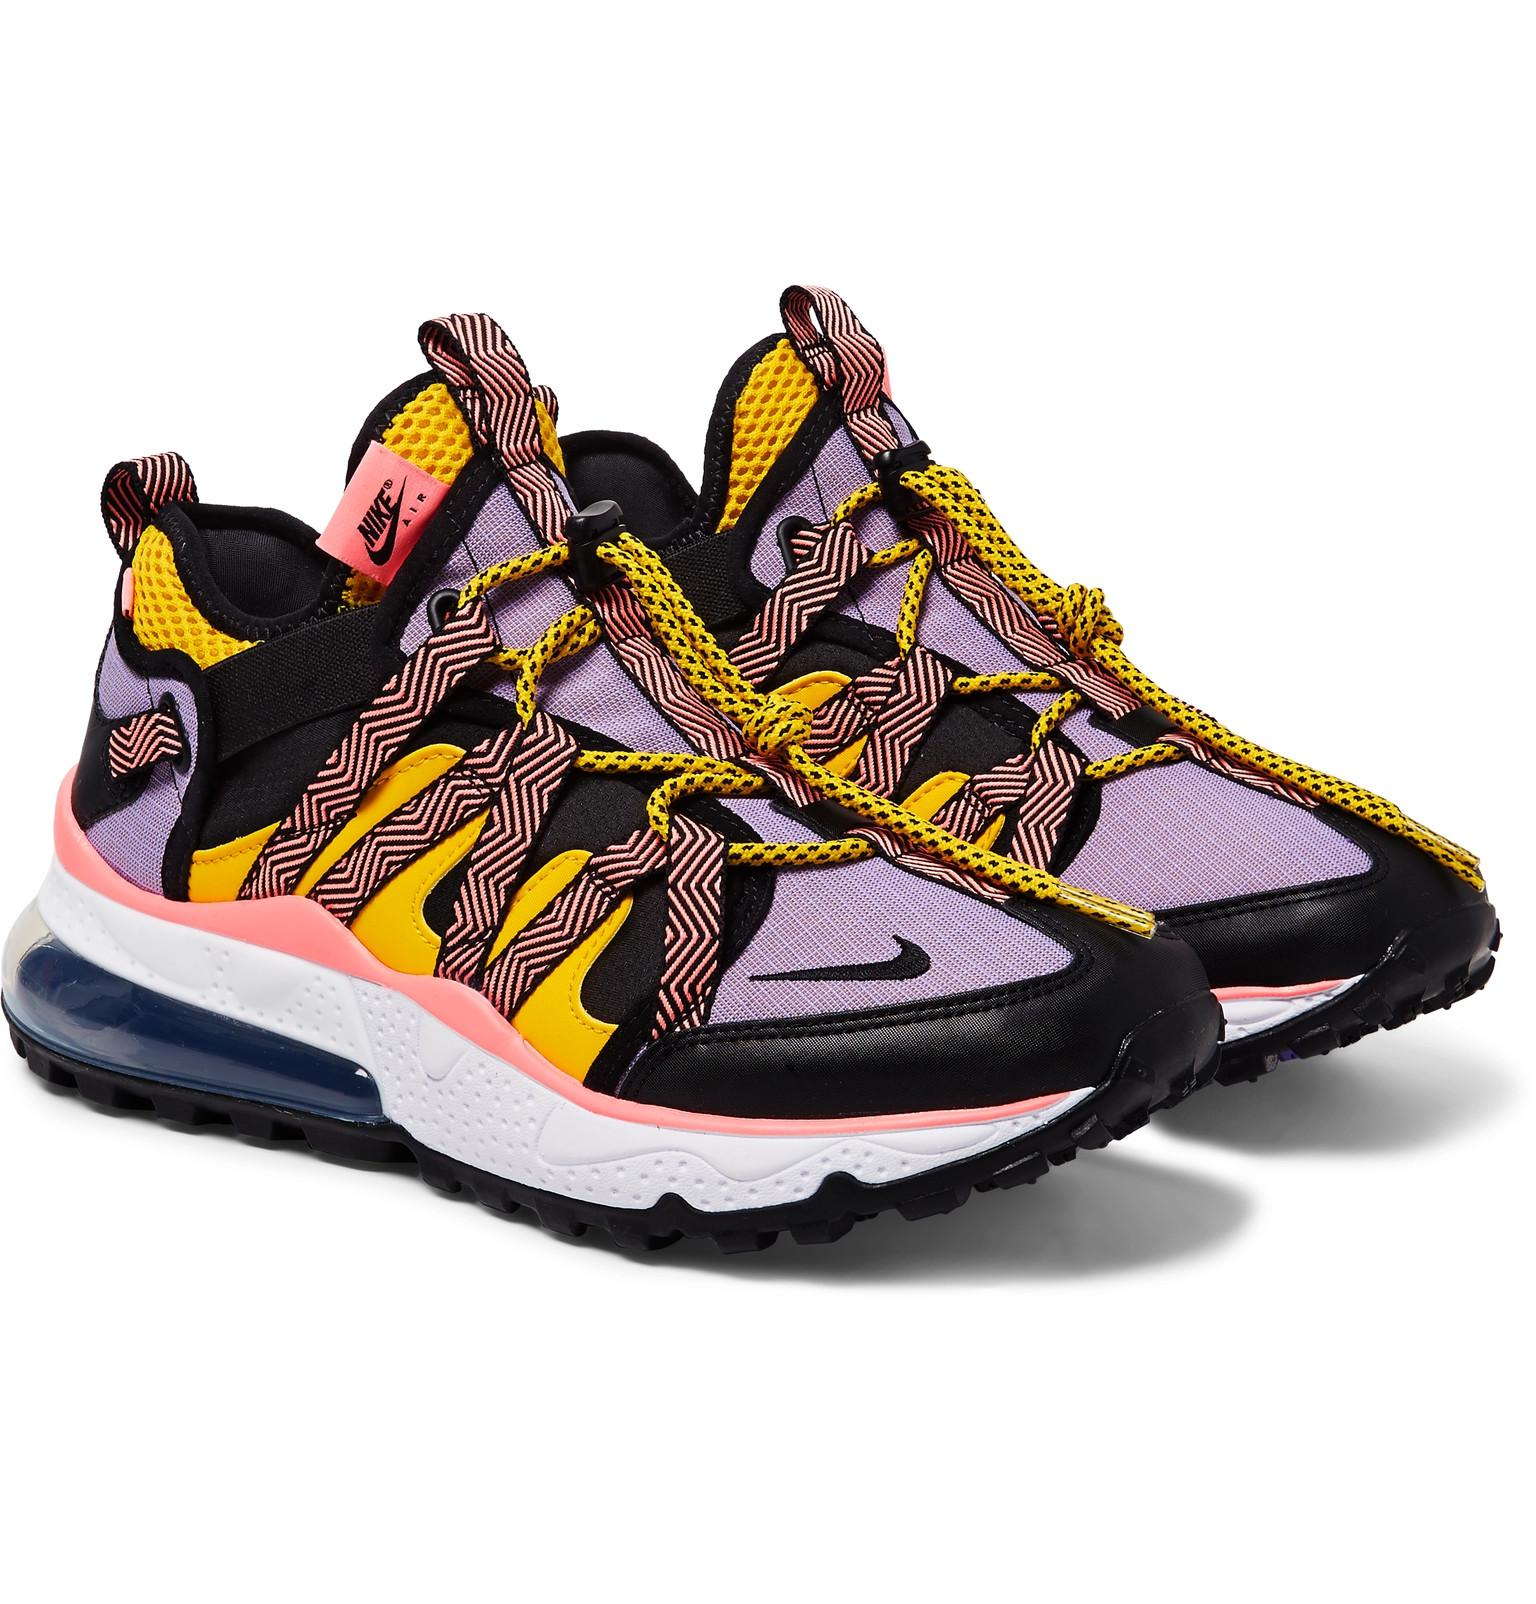 Nike - Multicolor Air Max 270 Bowfin Mesh And Nylon Sneakers for Men -  Lyst. View fullscreen 0983a01b8